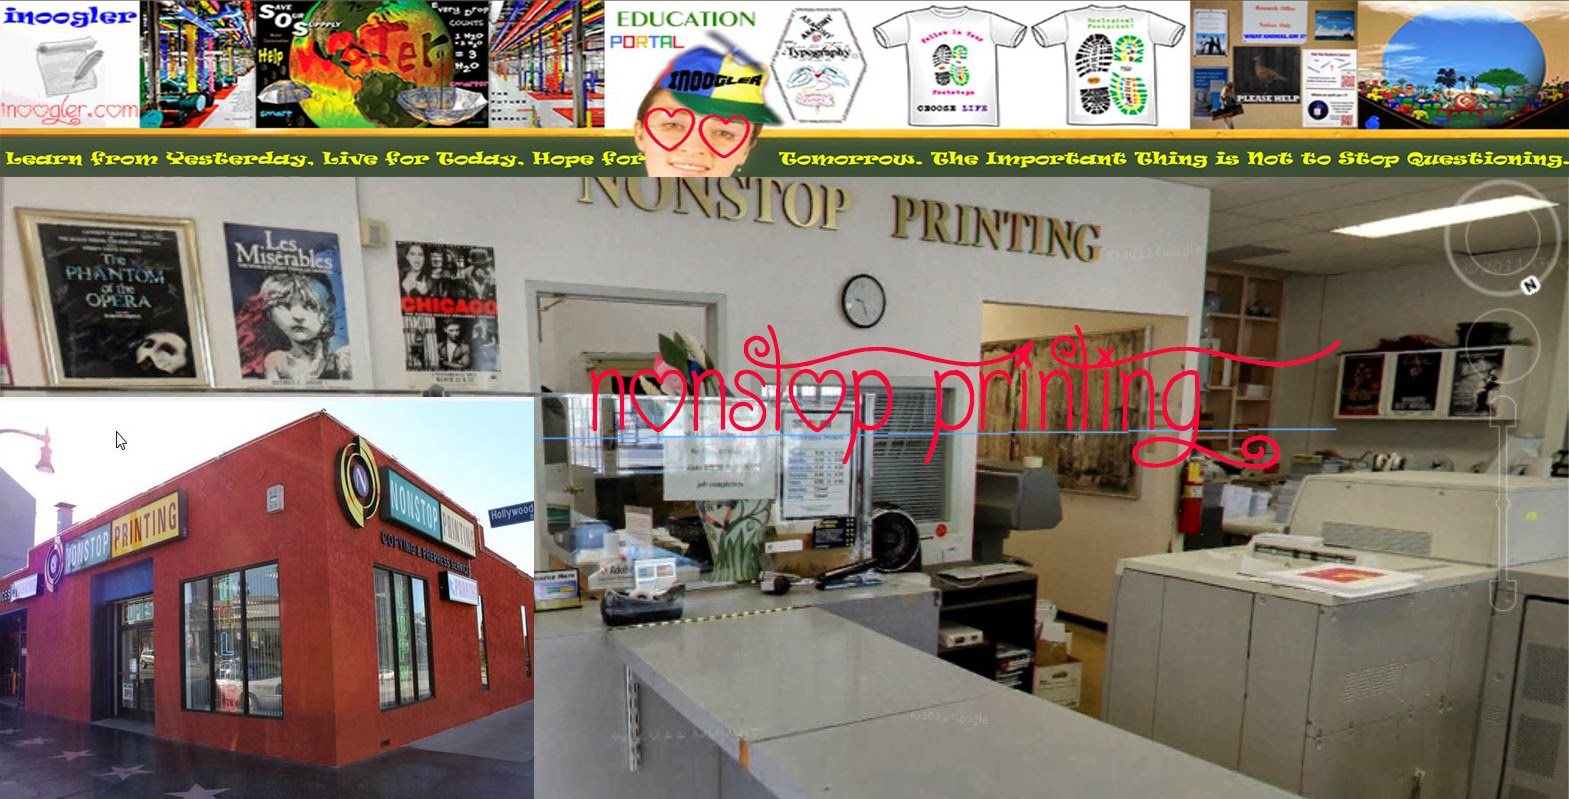 NONSTOP PRINTING HOLLYWOOD CALIFORNIA